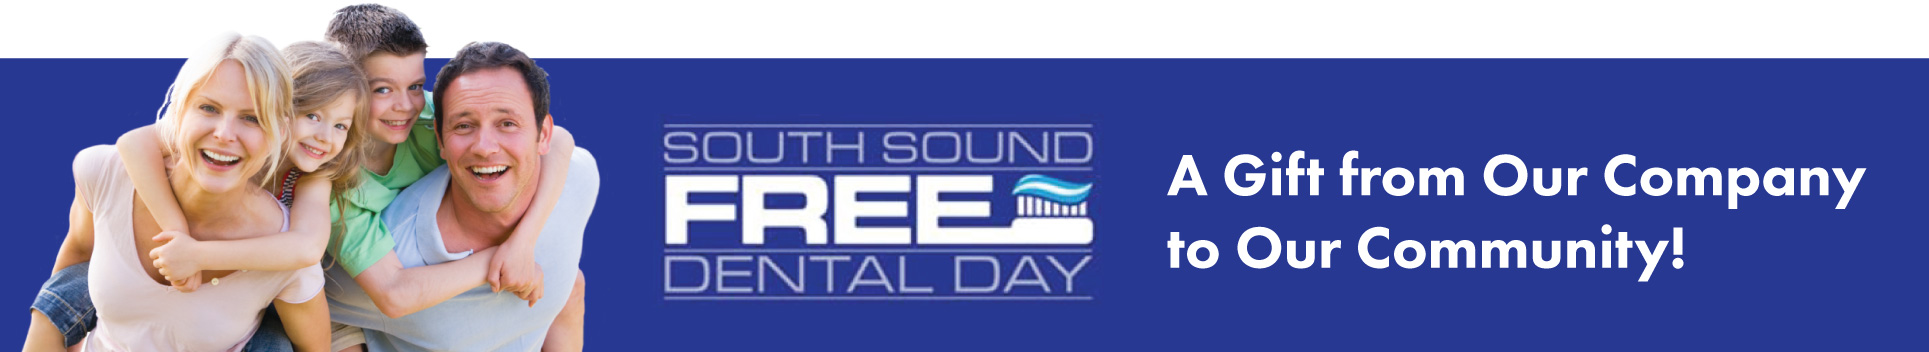 South Sound Free Dental Day